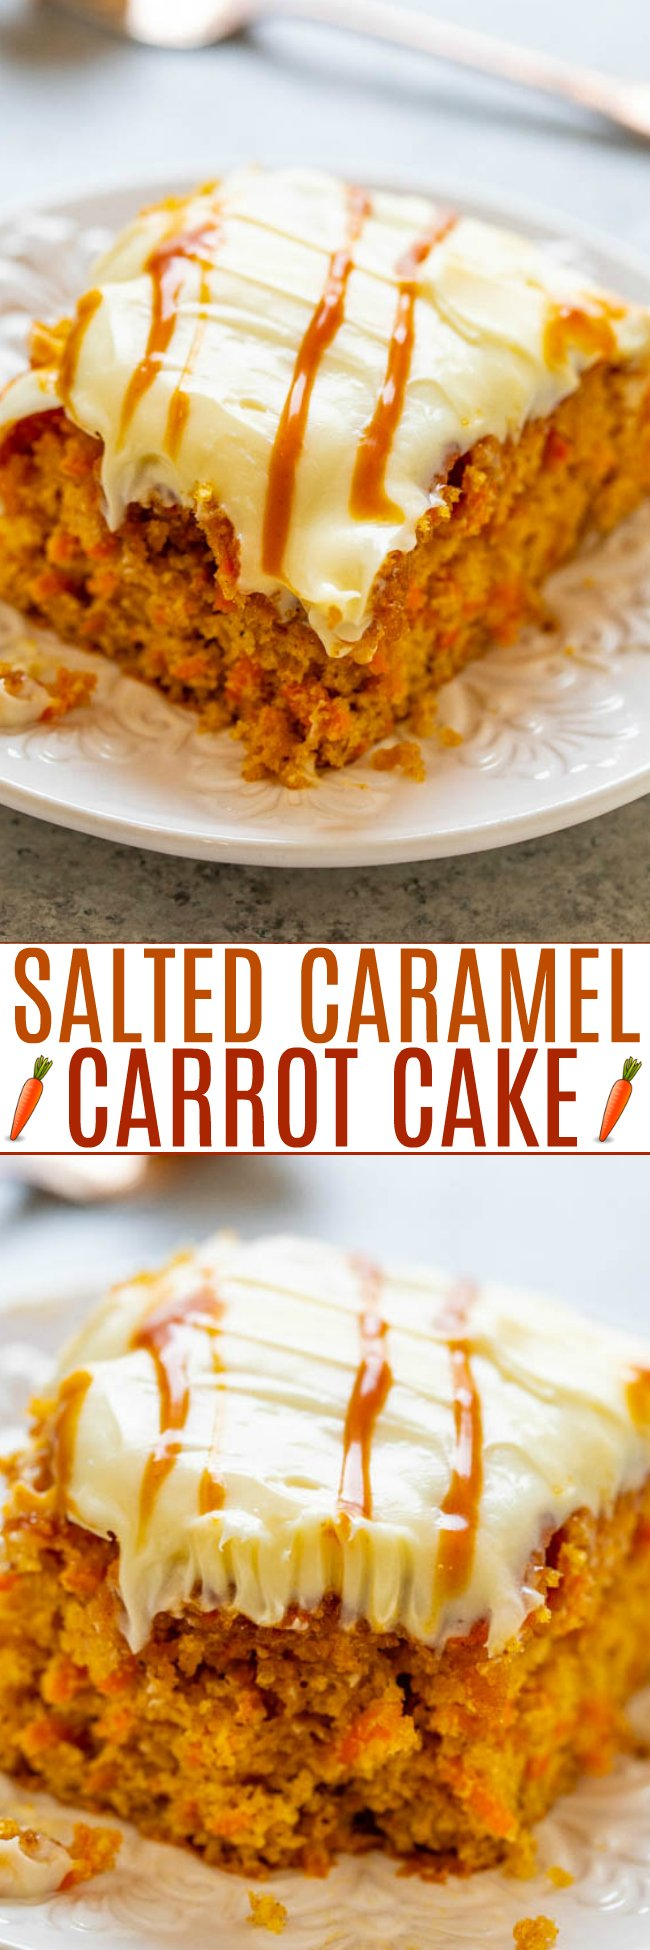 Easy Carrot Cake with Cake Mix (+ Caramel Sauce!) - Soft, tender carrot cake infused with salted caramel sauce and topped with tangy cream cheese frosting is the ULTIMATE in decadence!! Calling all carrot cake fans, you will LOVE this version!!